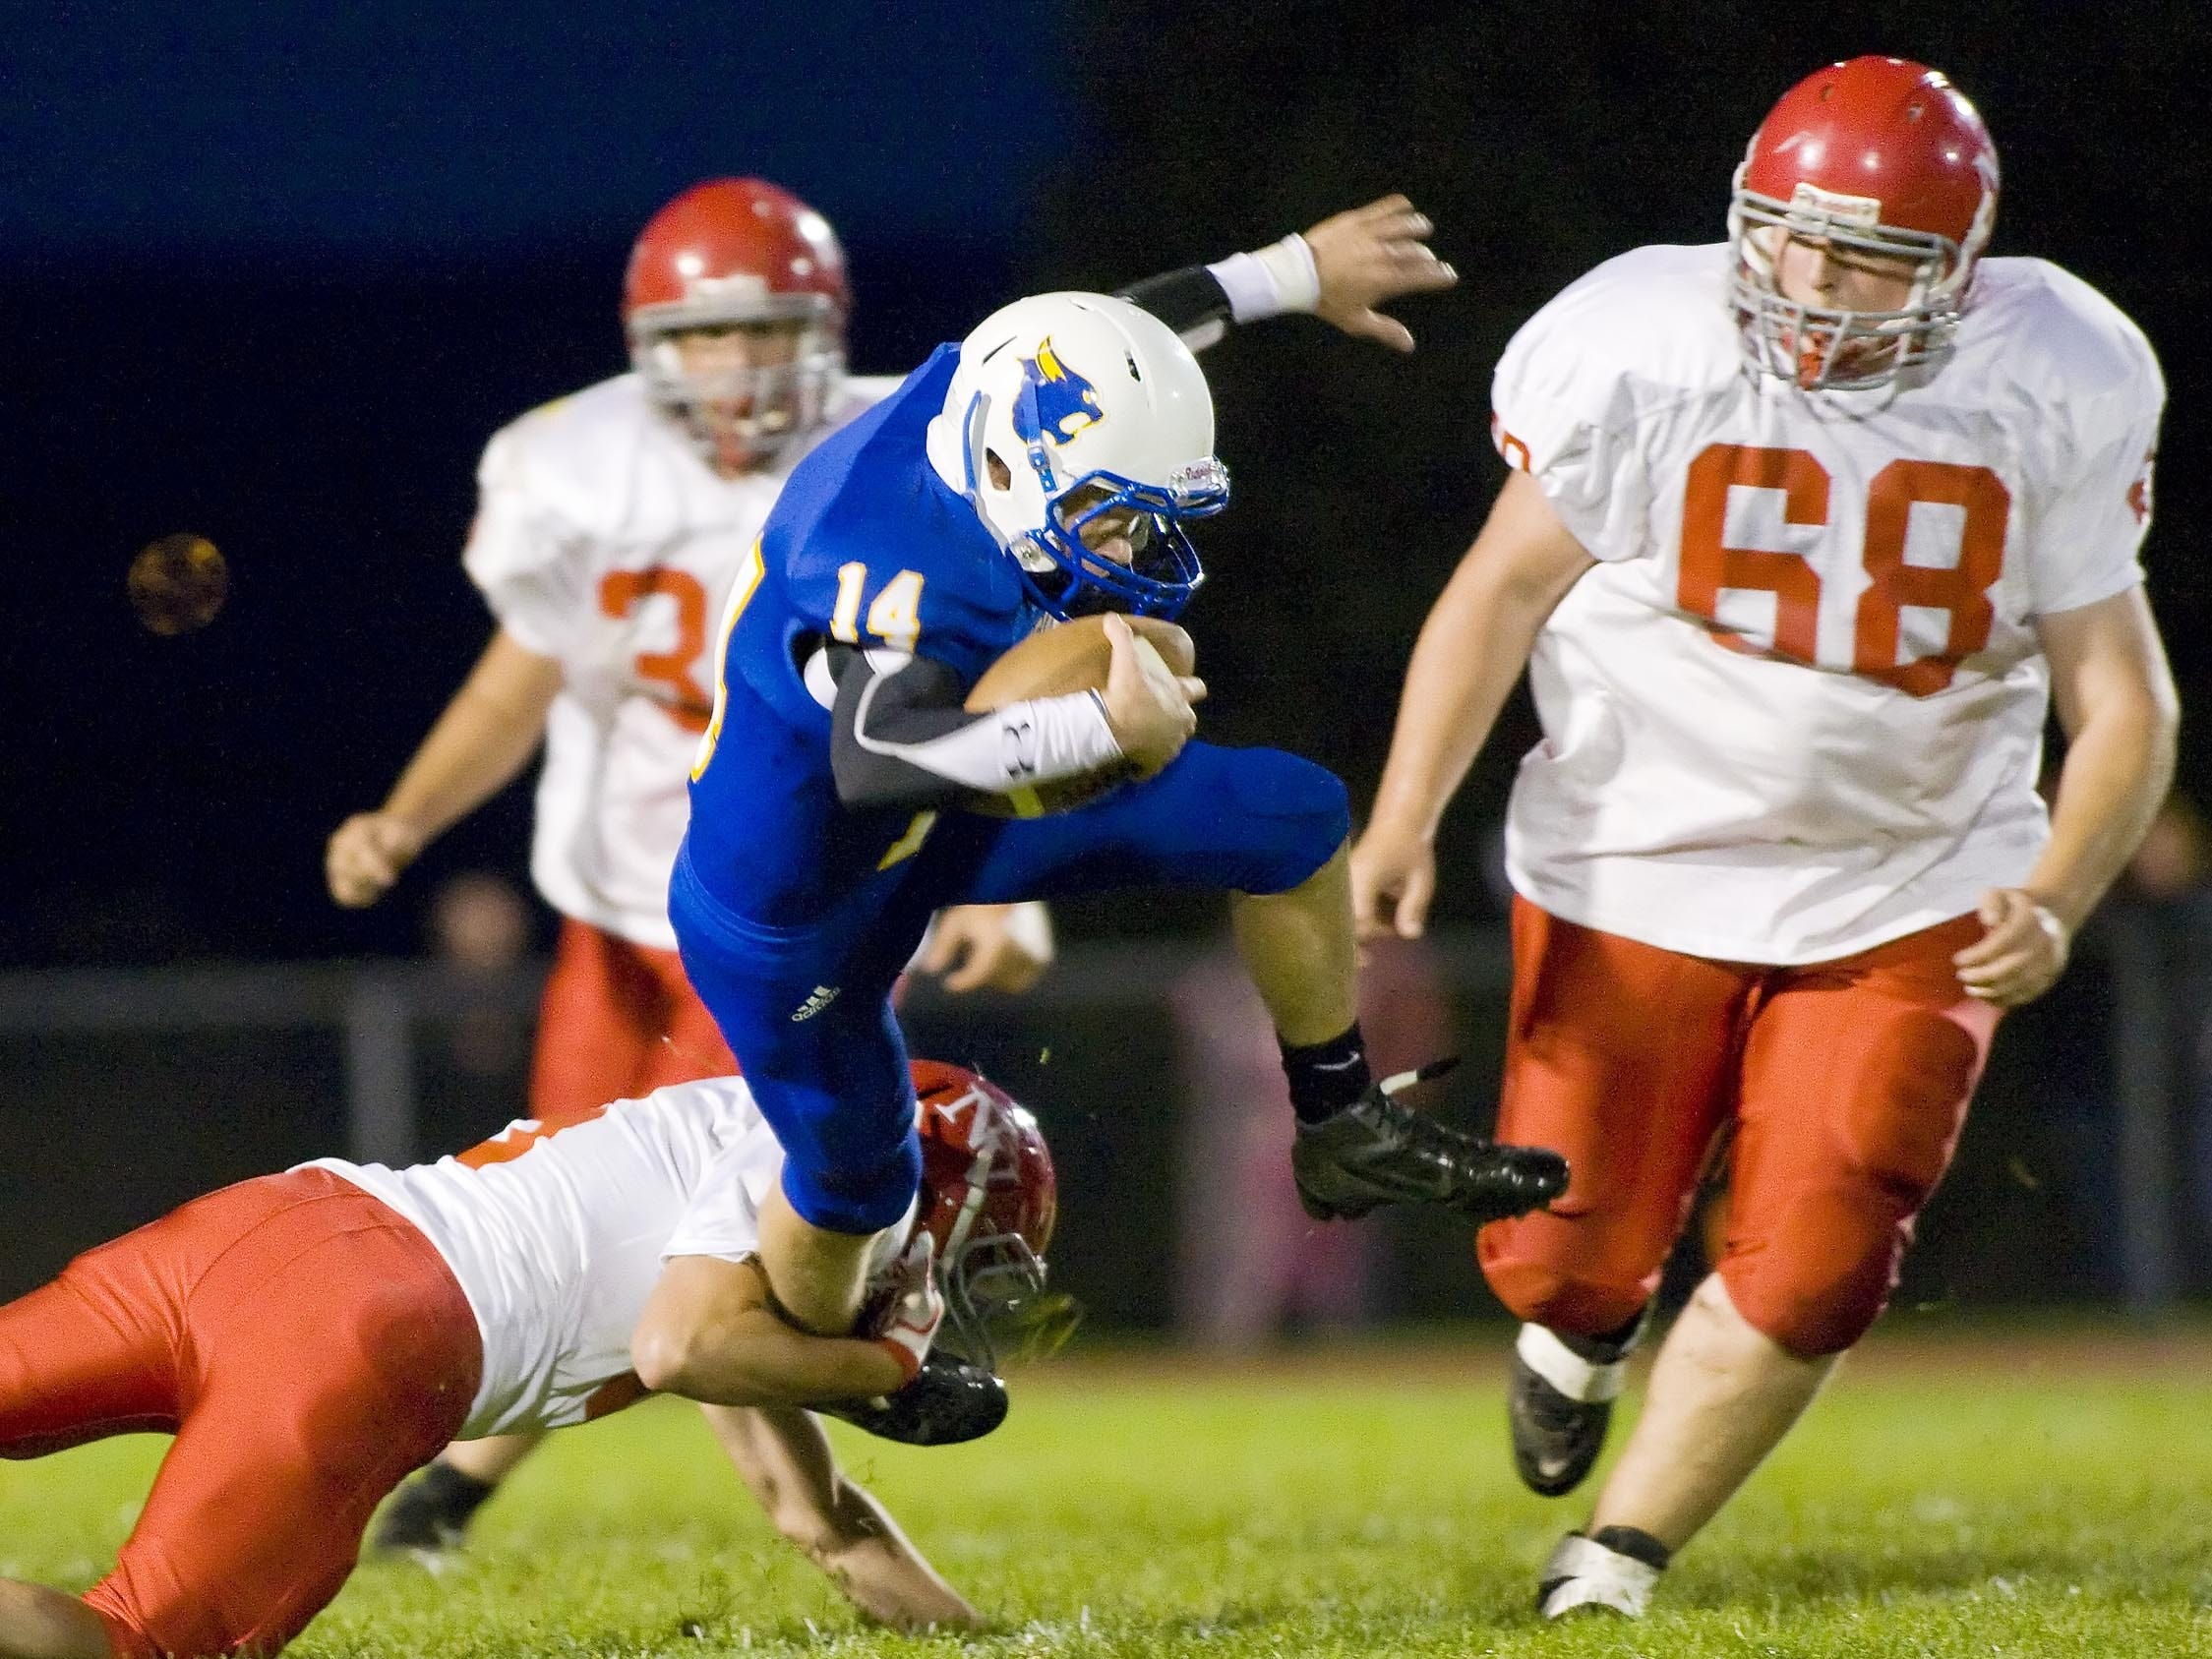 From 2011: Newark Valley's Nick Whitmarsh hangs on to bring down Lansing's Corey Dake as Newark Valley's Cody French right comes to help out during the first half of their game Friday evening in Lansing.